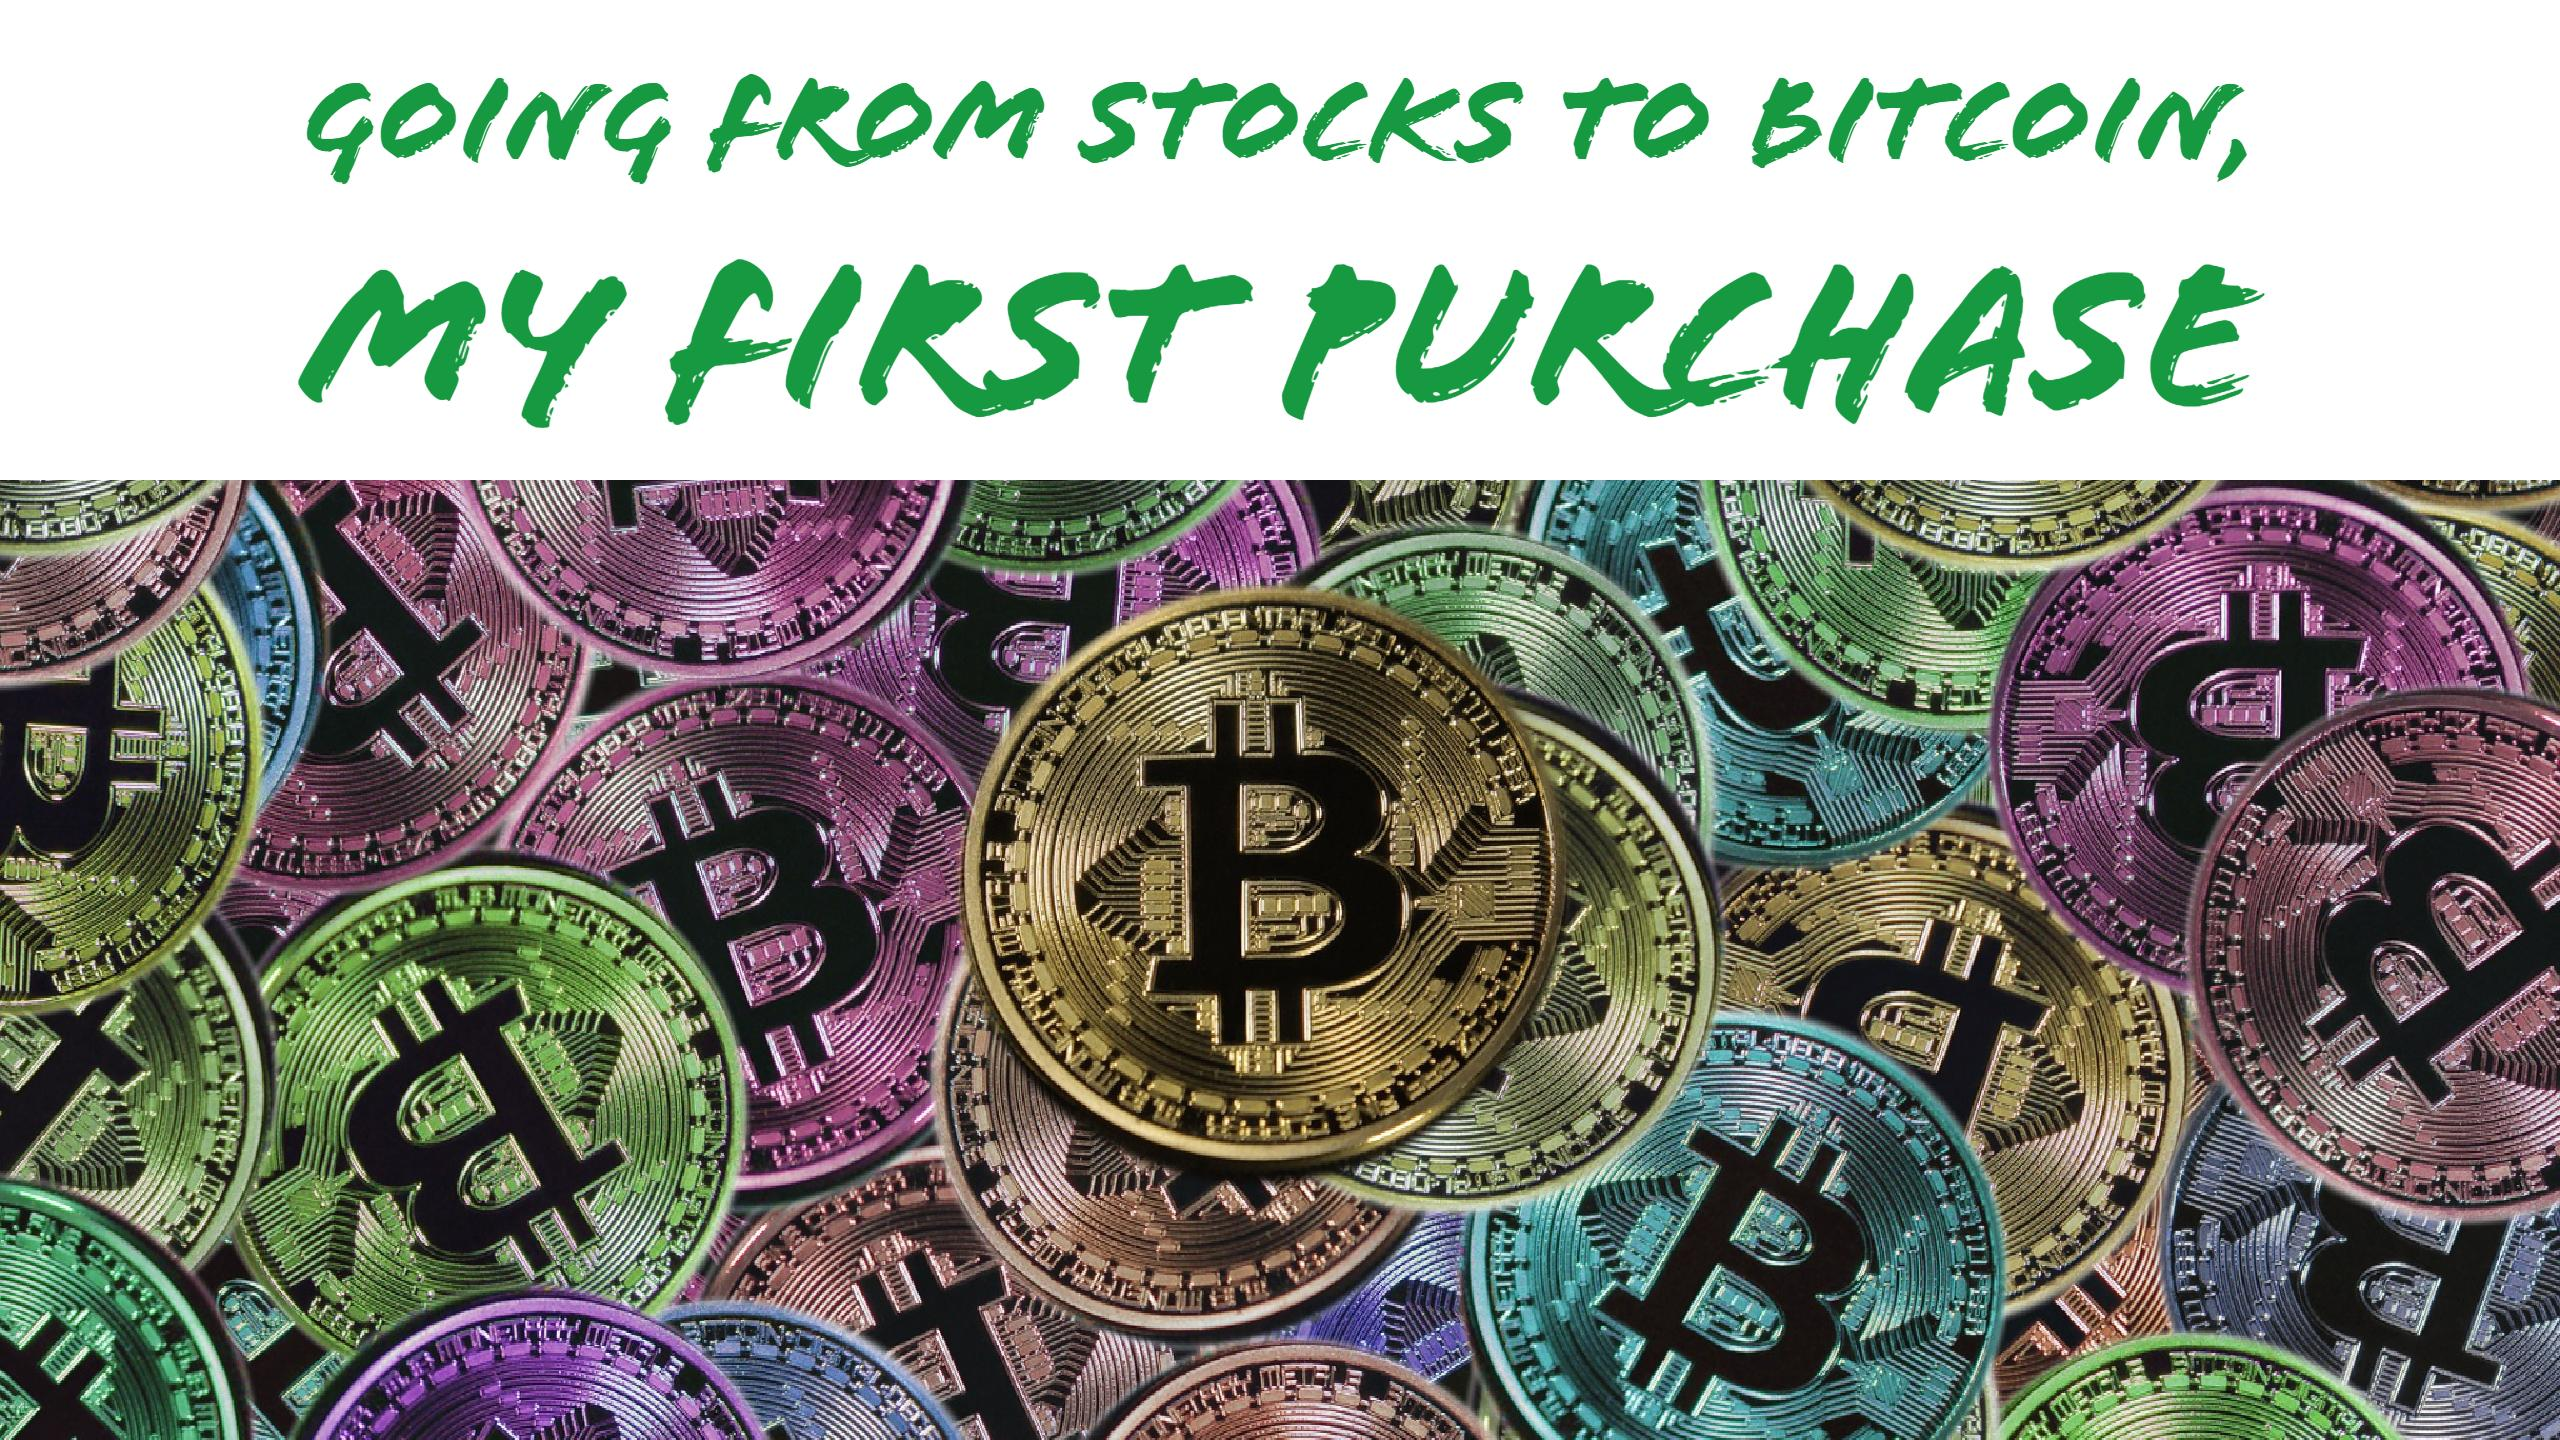 Going from stocks to bitcoin my first crytocurrency purchase image depicting buying cryptocurrency and buying bitcoin for article titled going from stocks to cryptocurrency ccuart Image collections